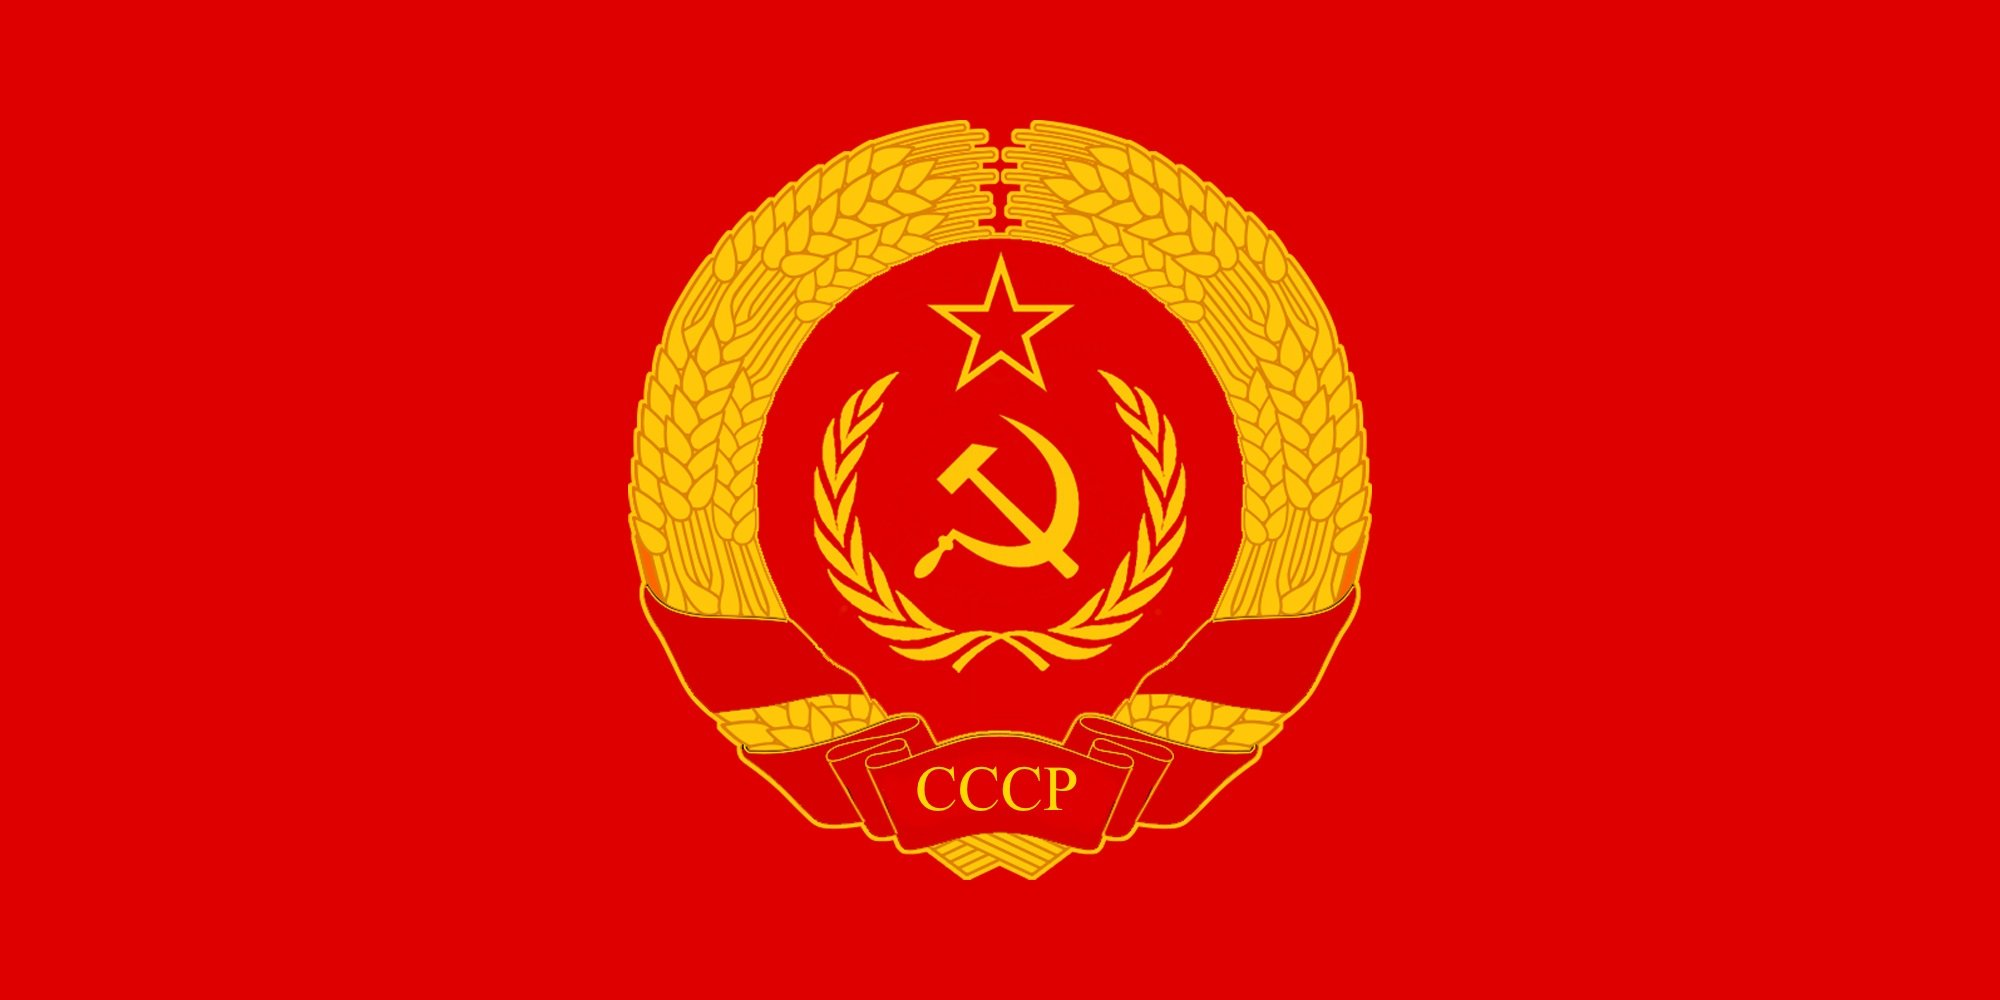 Union of Soviet Socialist Republics